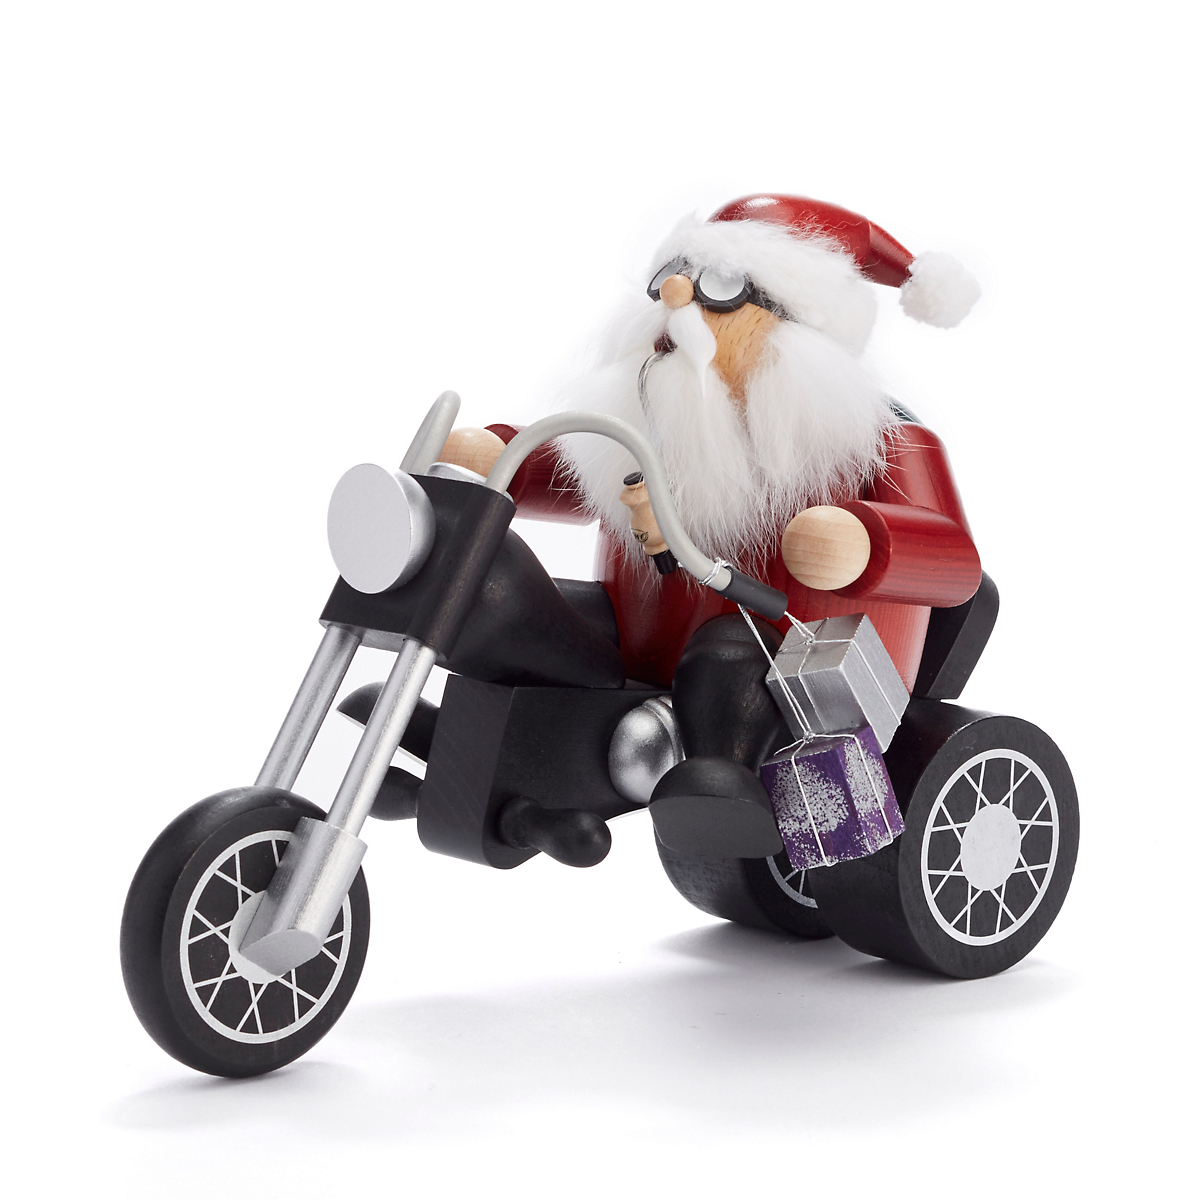 Kwo  Motorcycle Santa Smoker